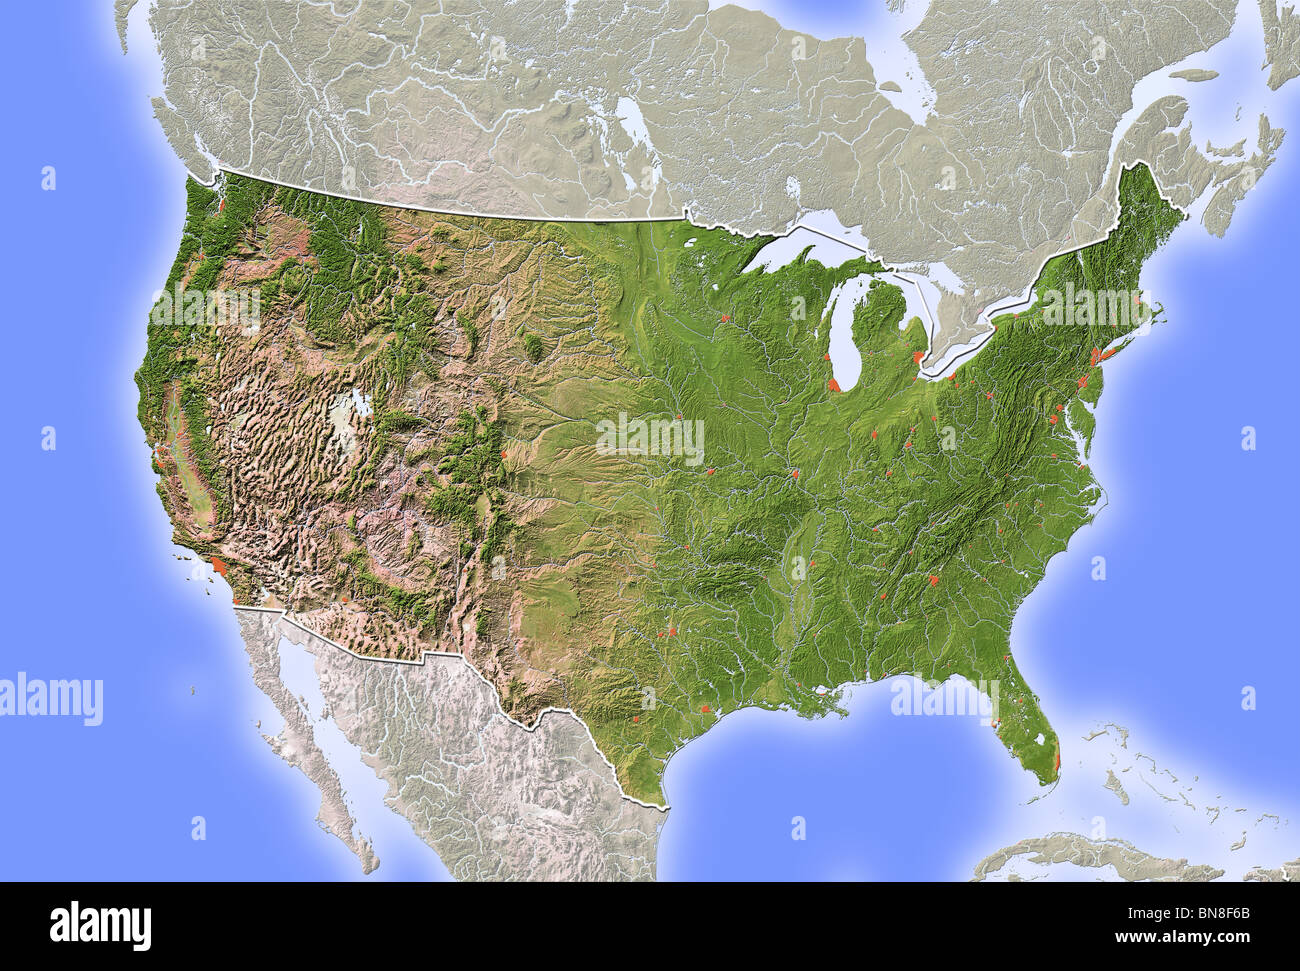 Usa Map Stockfotos & Usa Map Bilder - Alamy